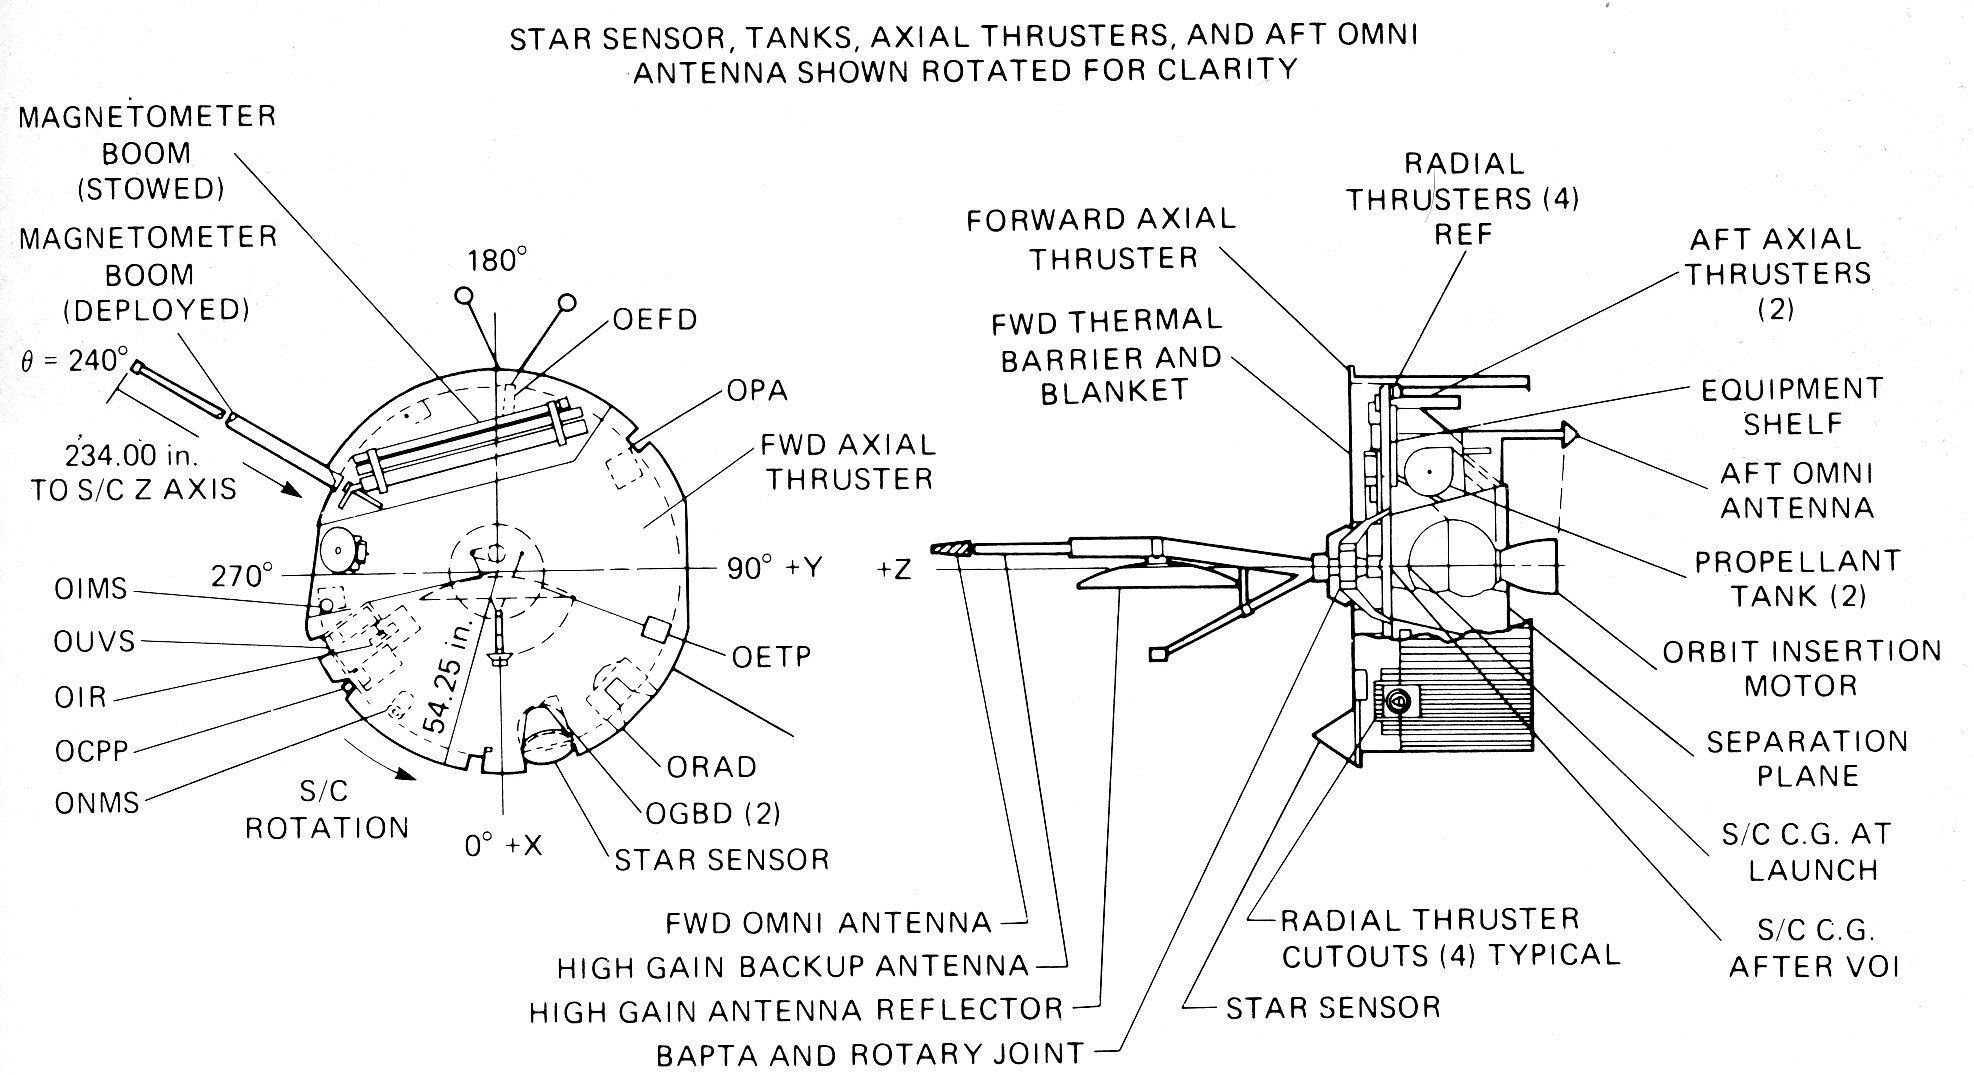 photos and diagrams of the pioneer 12 spacecraft - photo #40